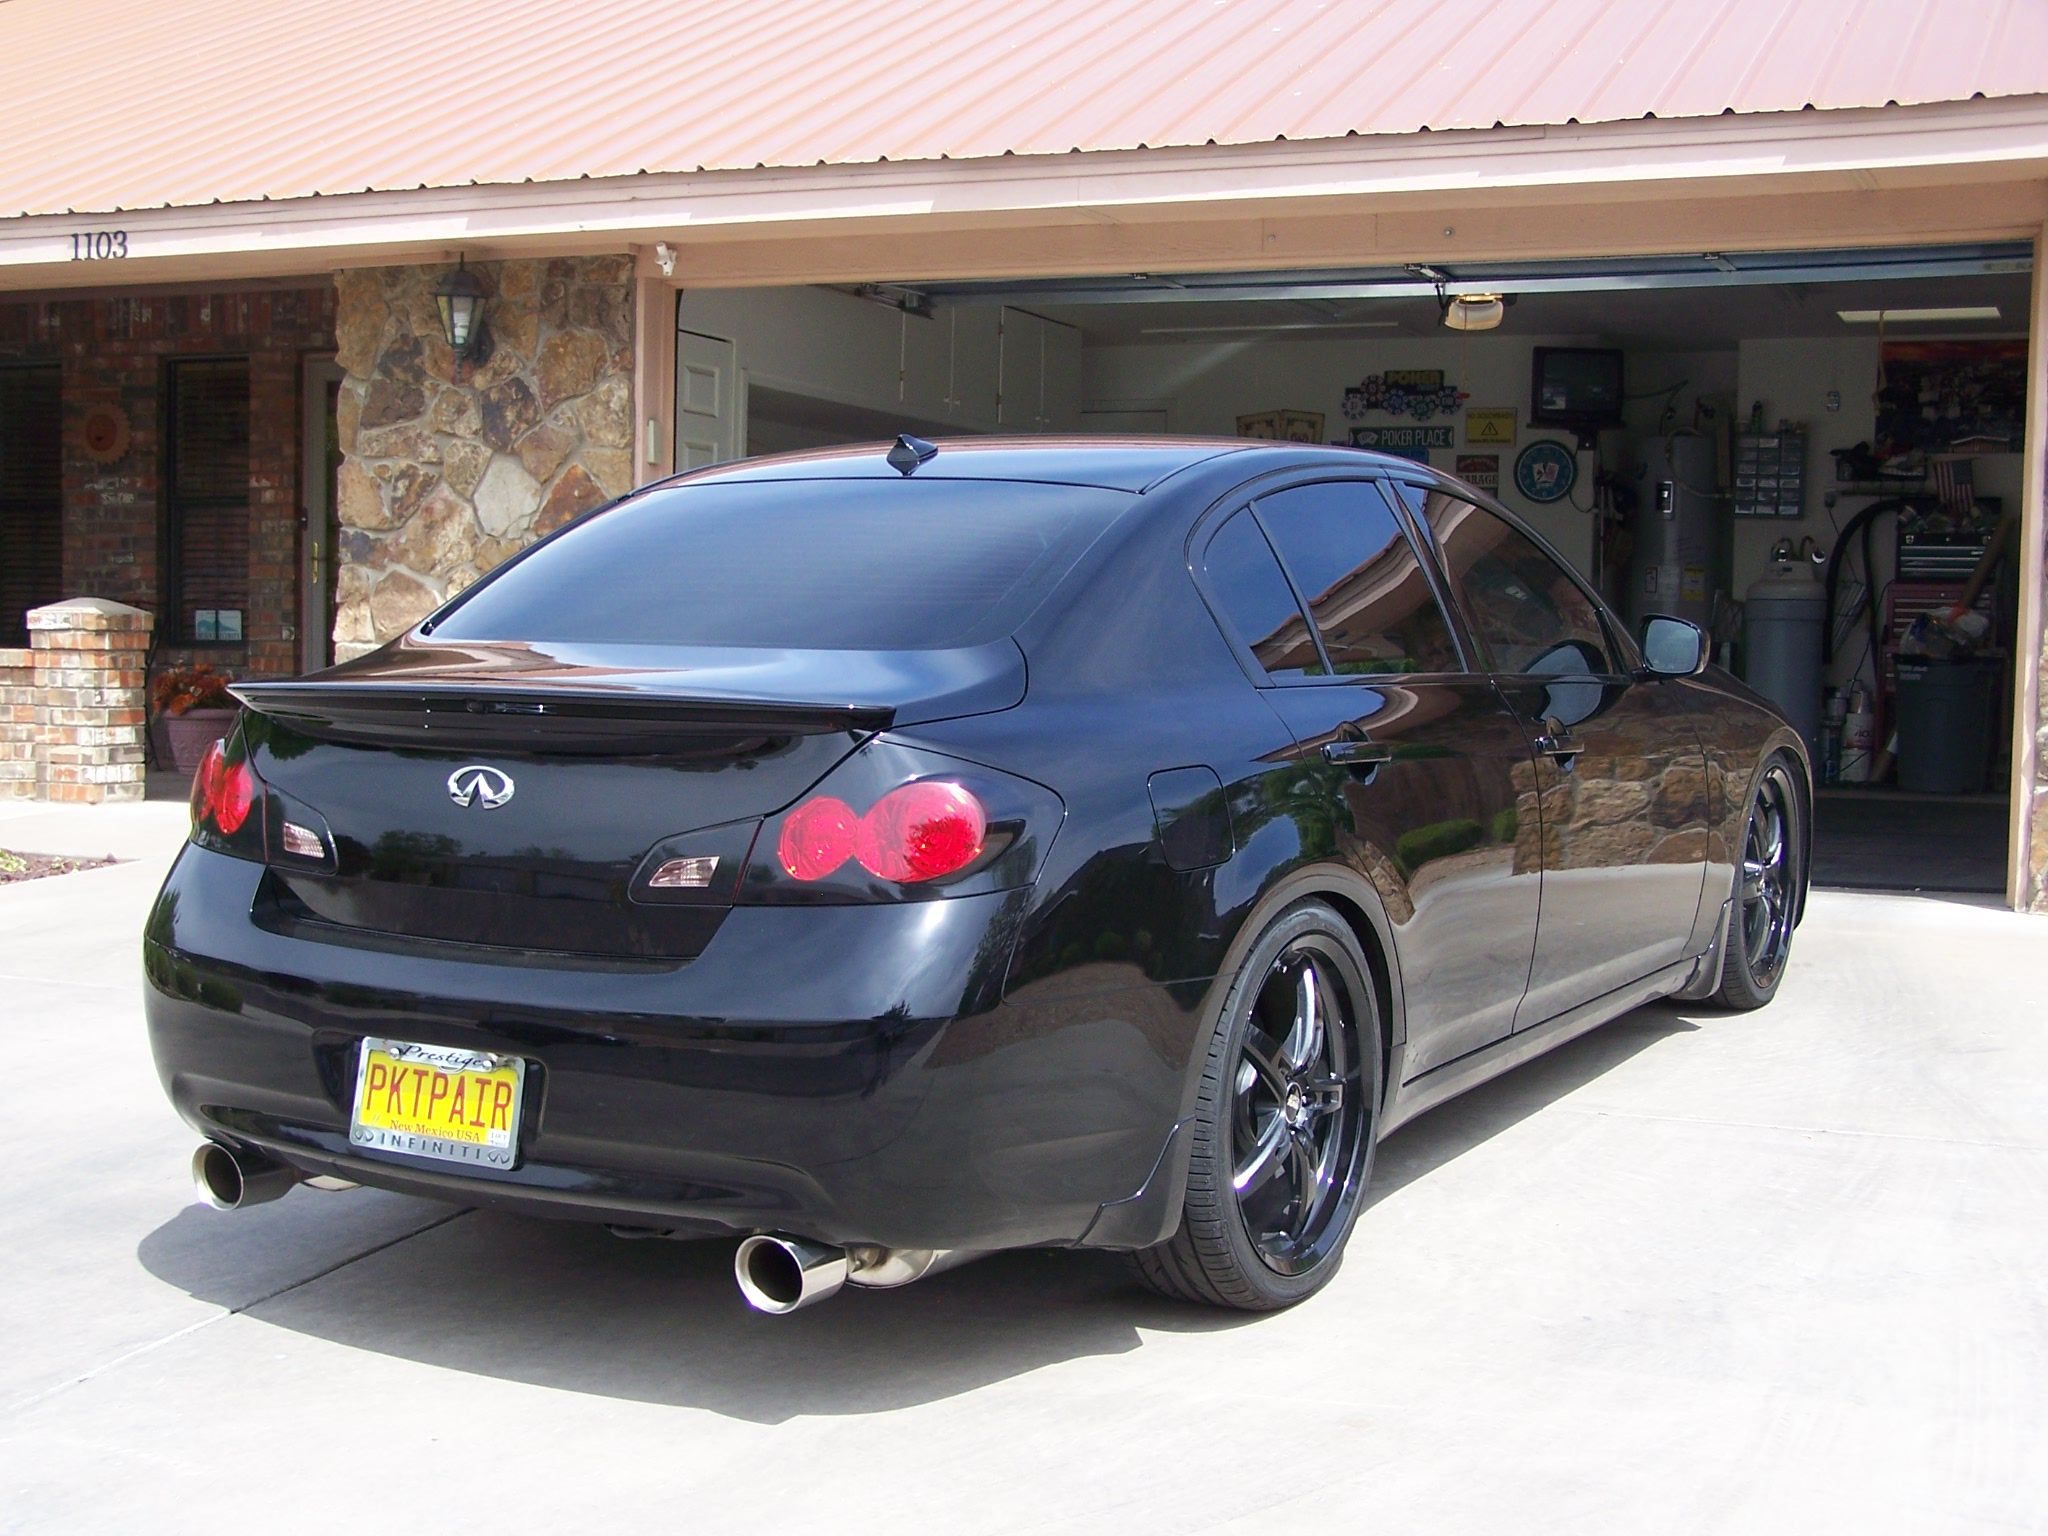 Spoiler or no spoiler g35driver infiniti g35 g37 forum of course once you get the rear spoiler you might want the front one too its a never ending curse lol vanachro Gallery